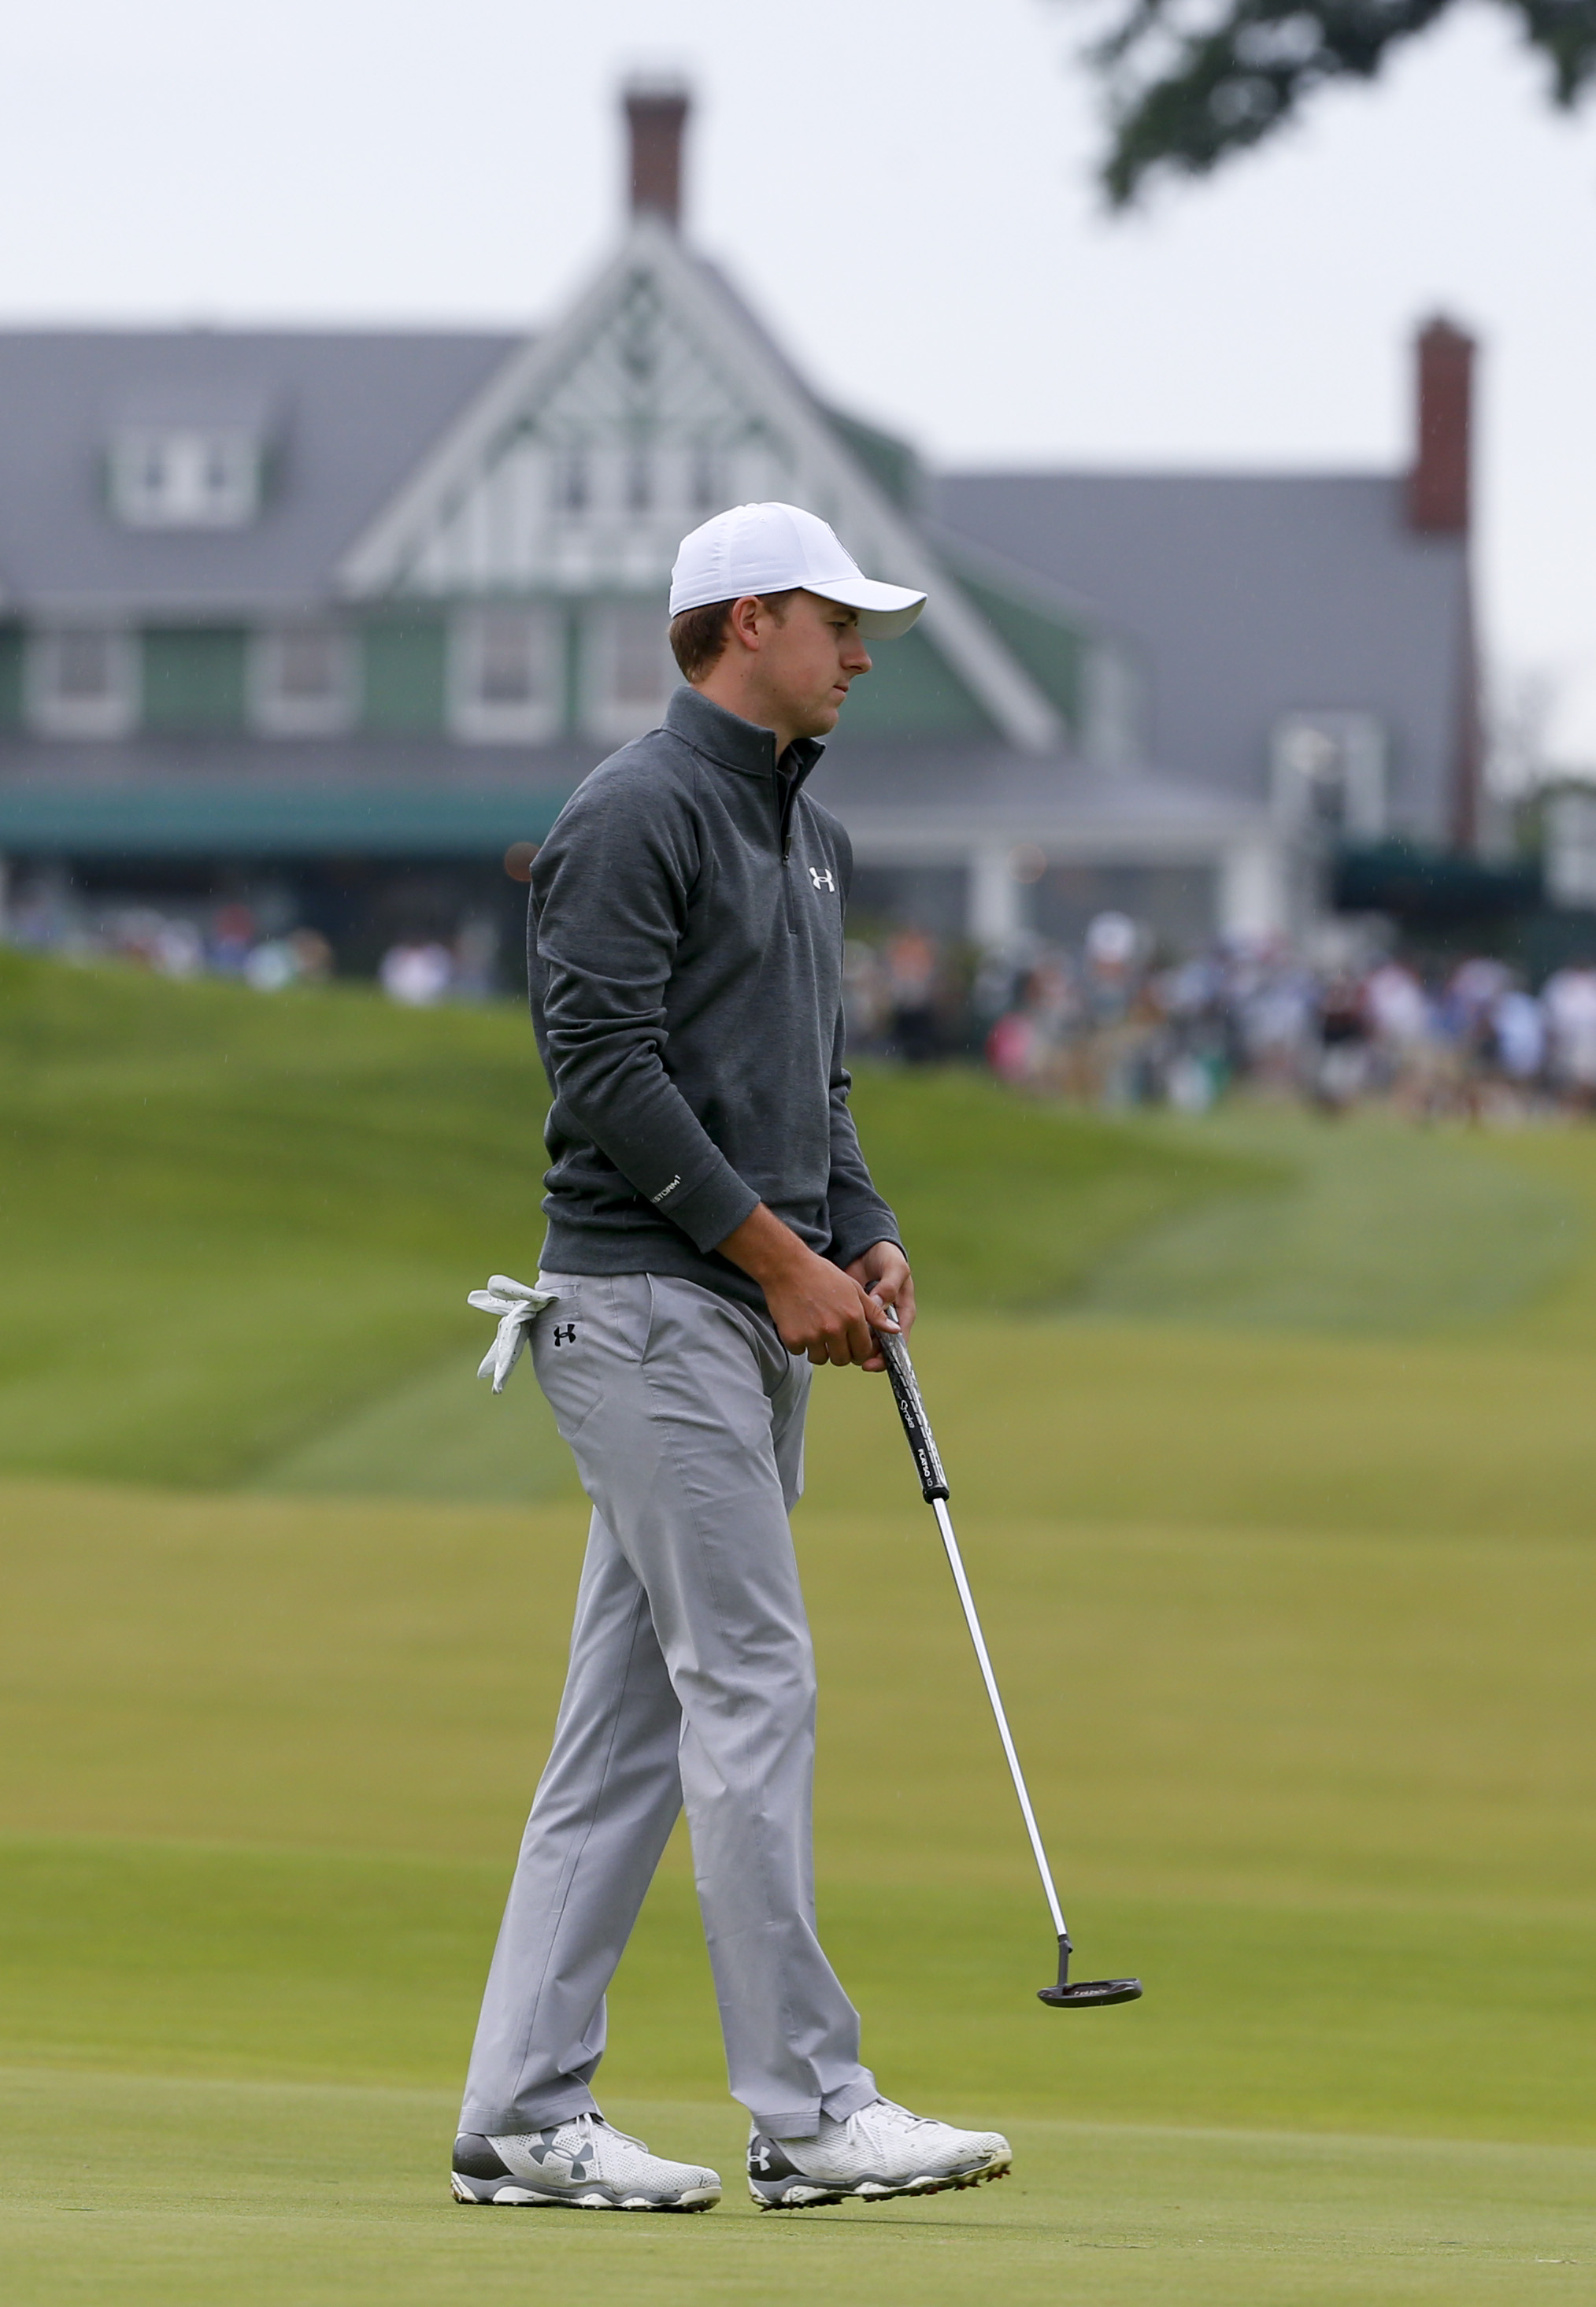 Jordan Spieth lines up his putt on the 10th hole during a practice round for the U.S. Open golf championship at Oakmont Country Club on Wednesday, June 15, 2016, in Oakmont, Pa. (AP Photo/Gene J. Puskar)